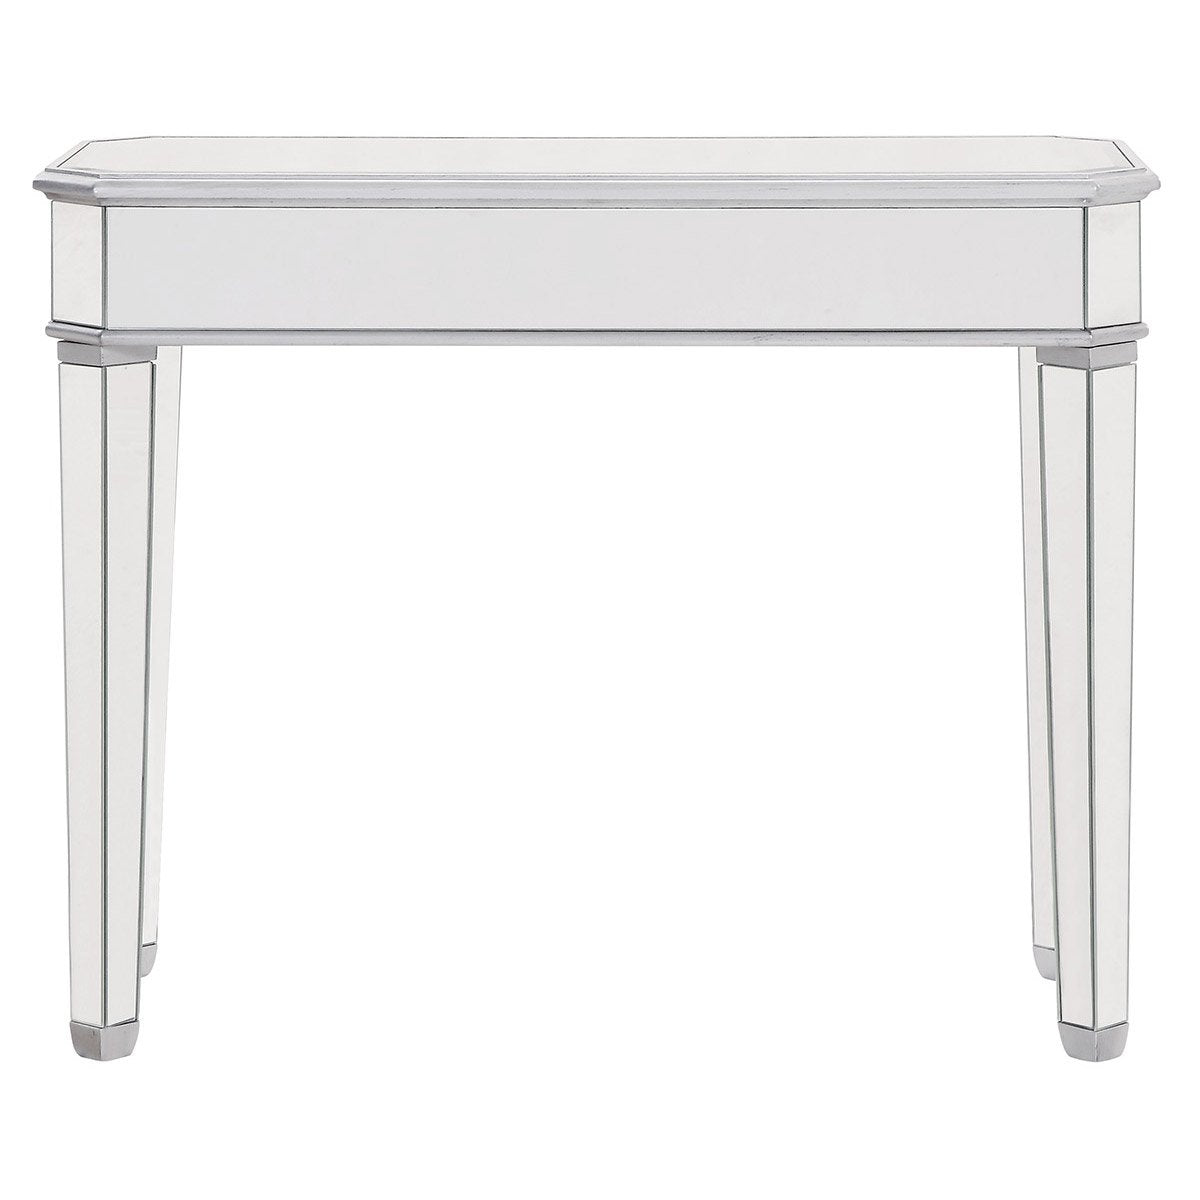 Contempo 41 X 32 Rectangle Table - Antique Silver Finish (Mf6-1025S) Rectangle Table